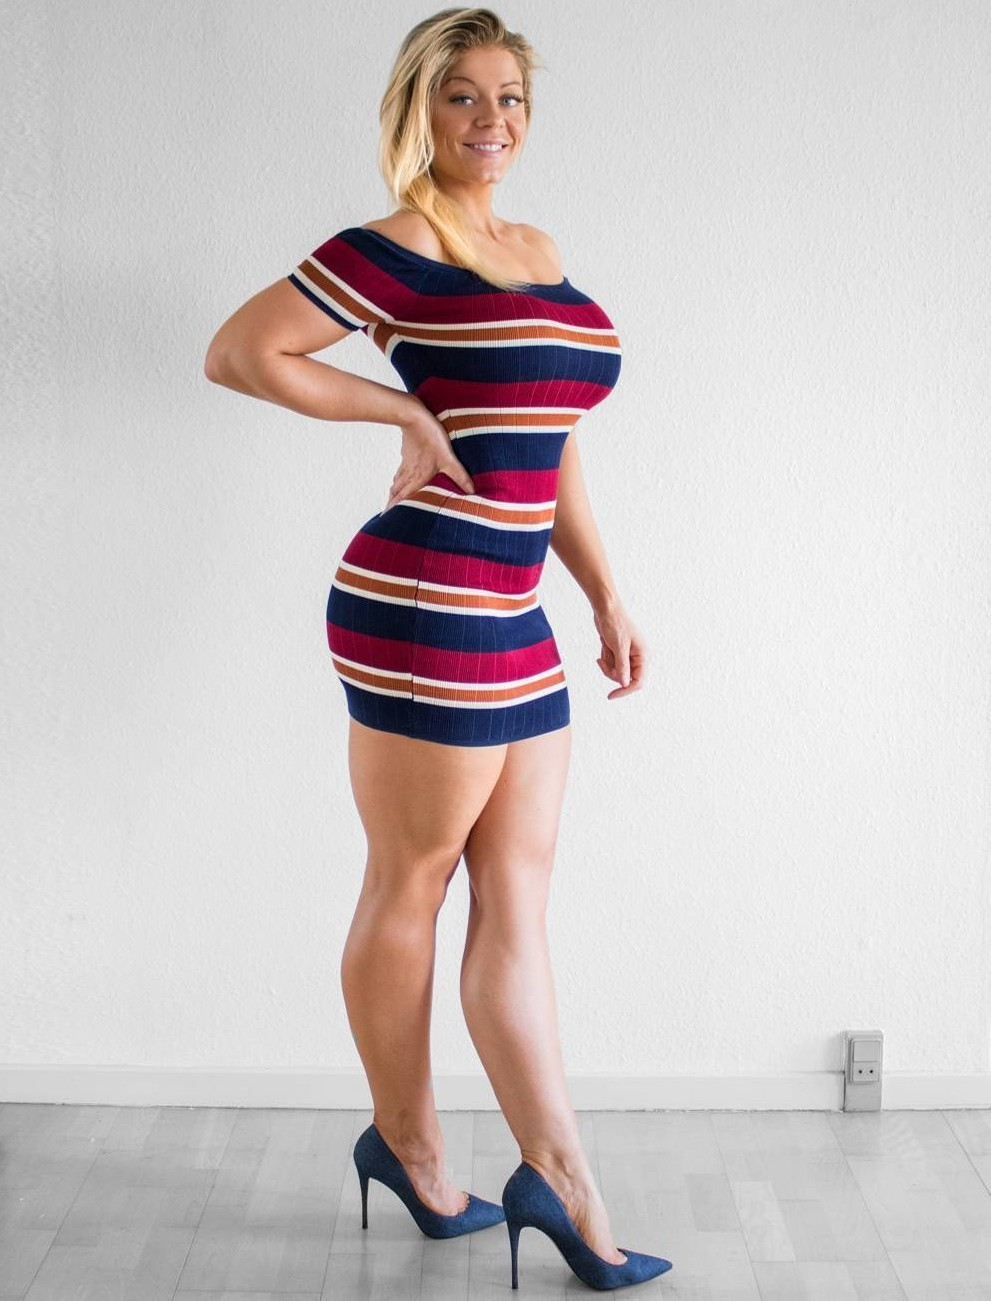 Sexy Thick Girl Outfits